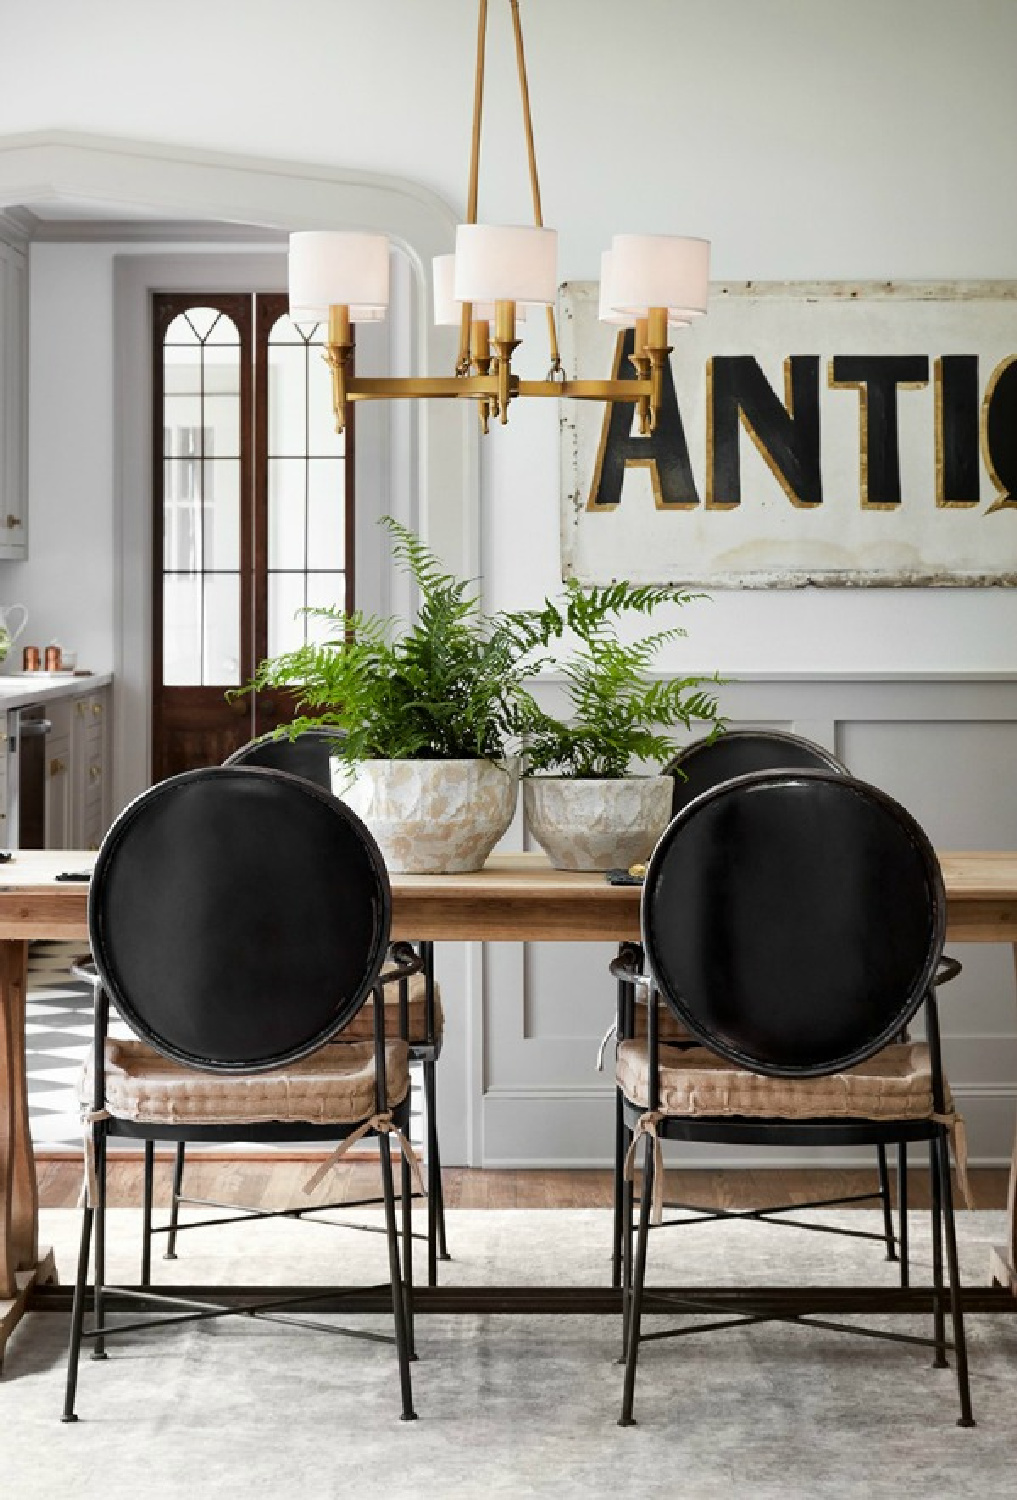 Get the Look: Scrivano FIXER UPPER Cottage Decor! Charming vintage style dining room's modern Louis chairs and tranquil palette. #scrivano #fixerupper #diningroom #joannagaines #greytrim